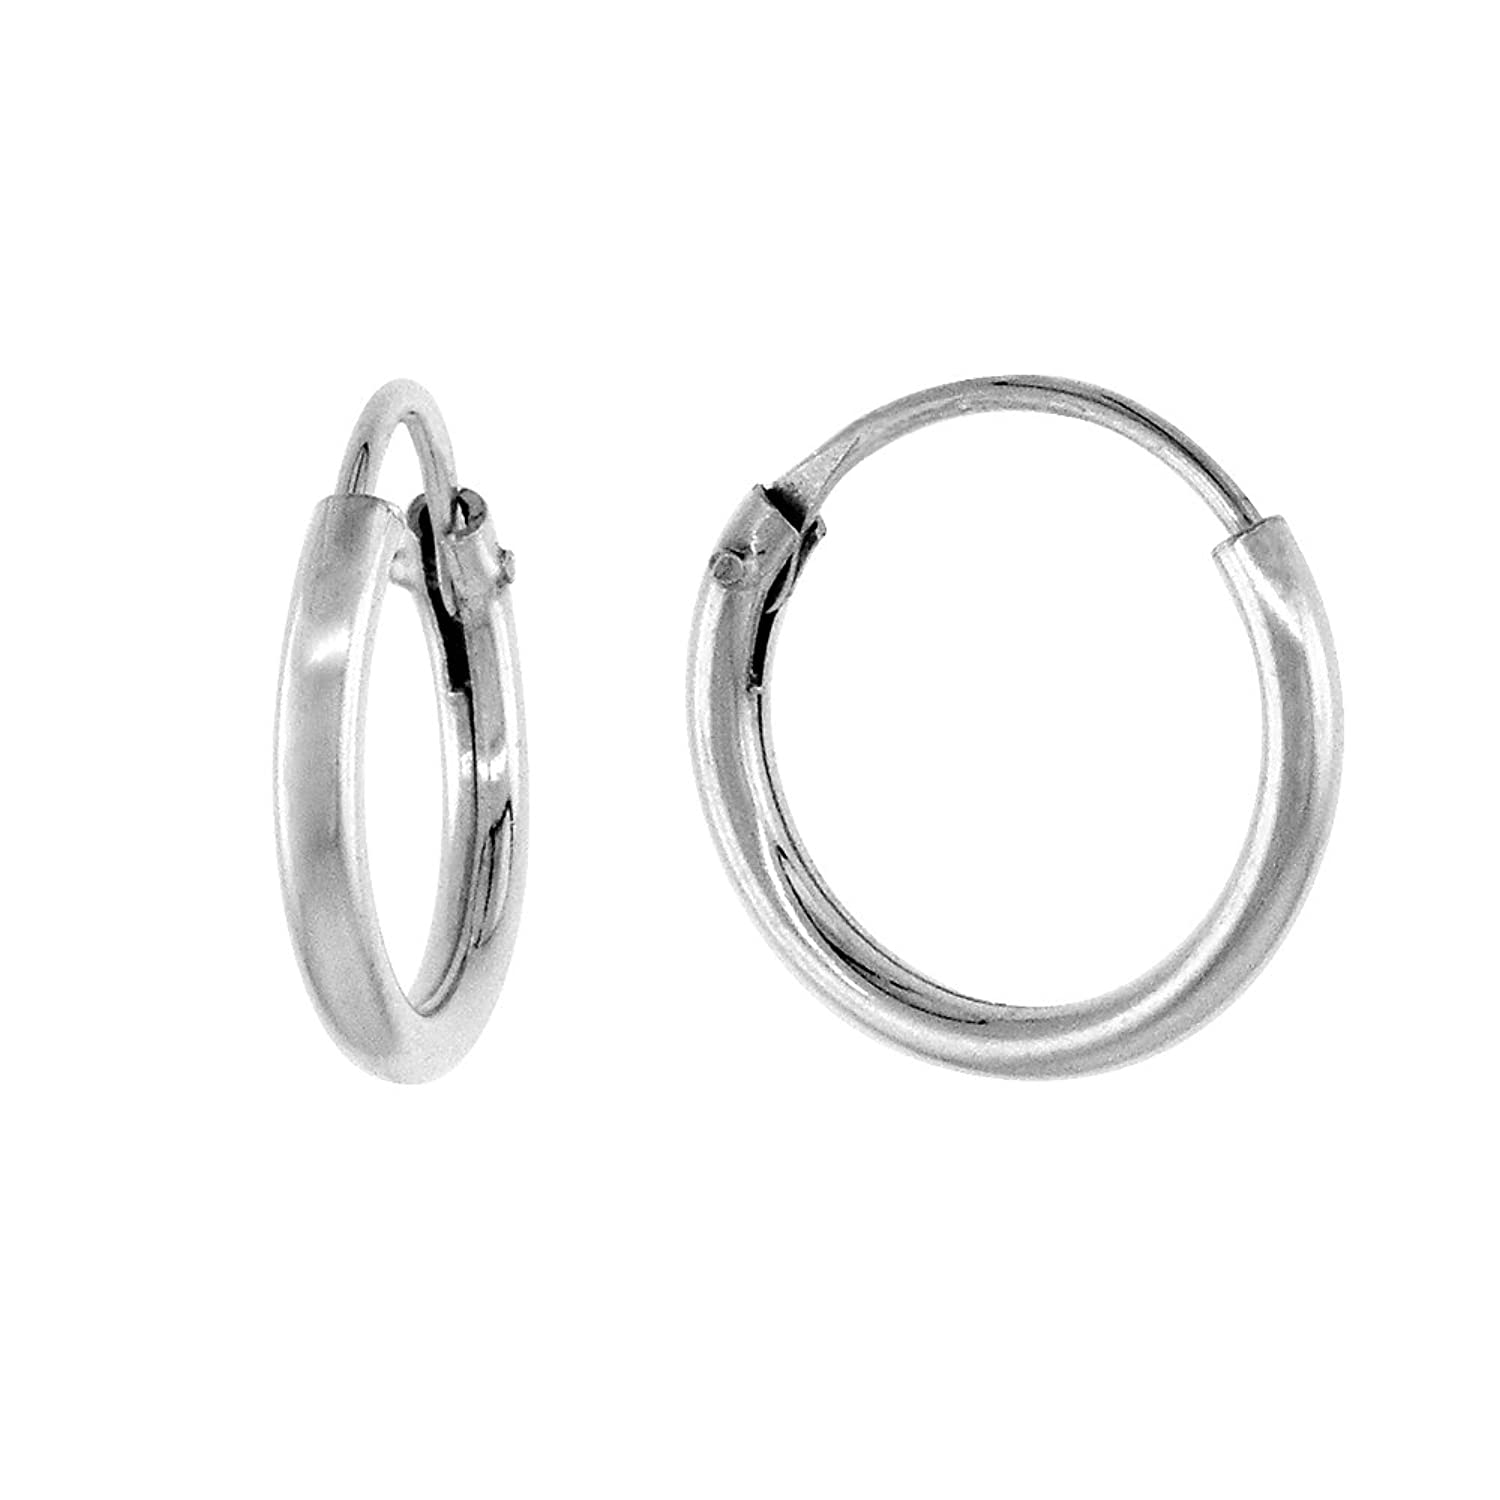 Amazon.com: Sterling Silver Small Endless Hoop Earrings for ...